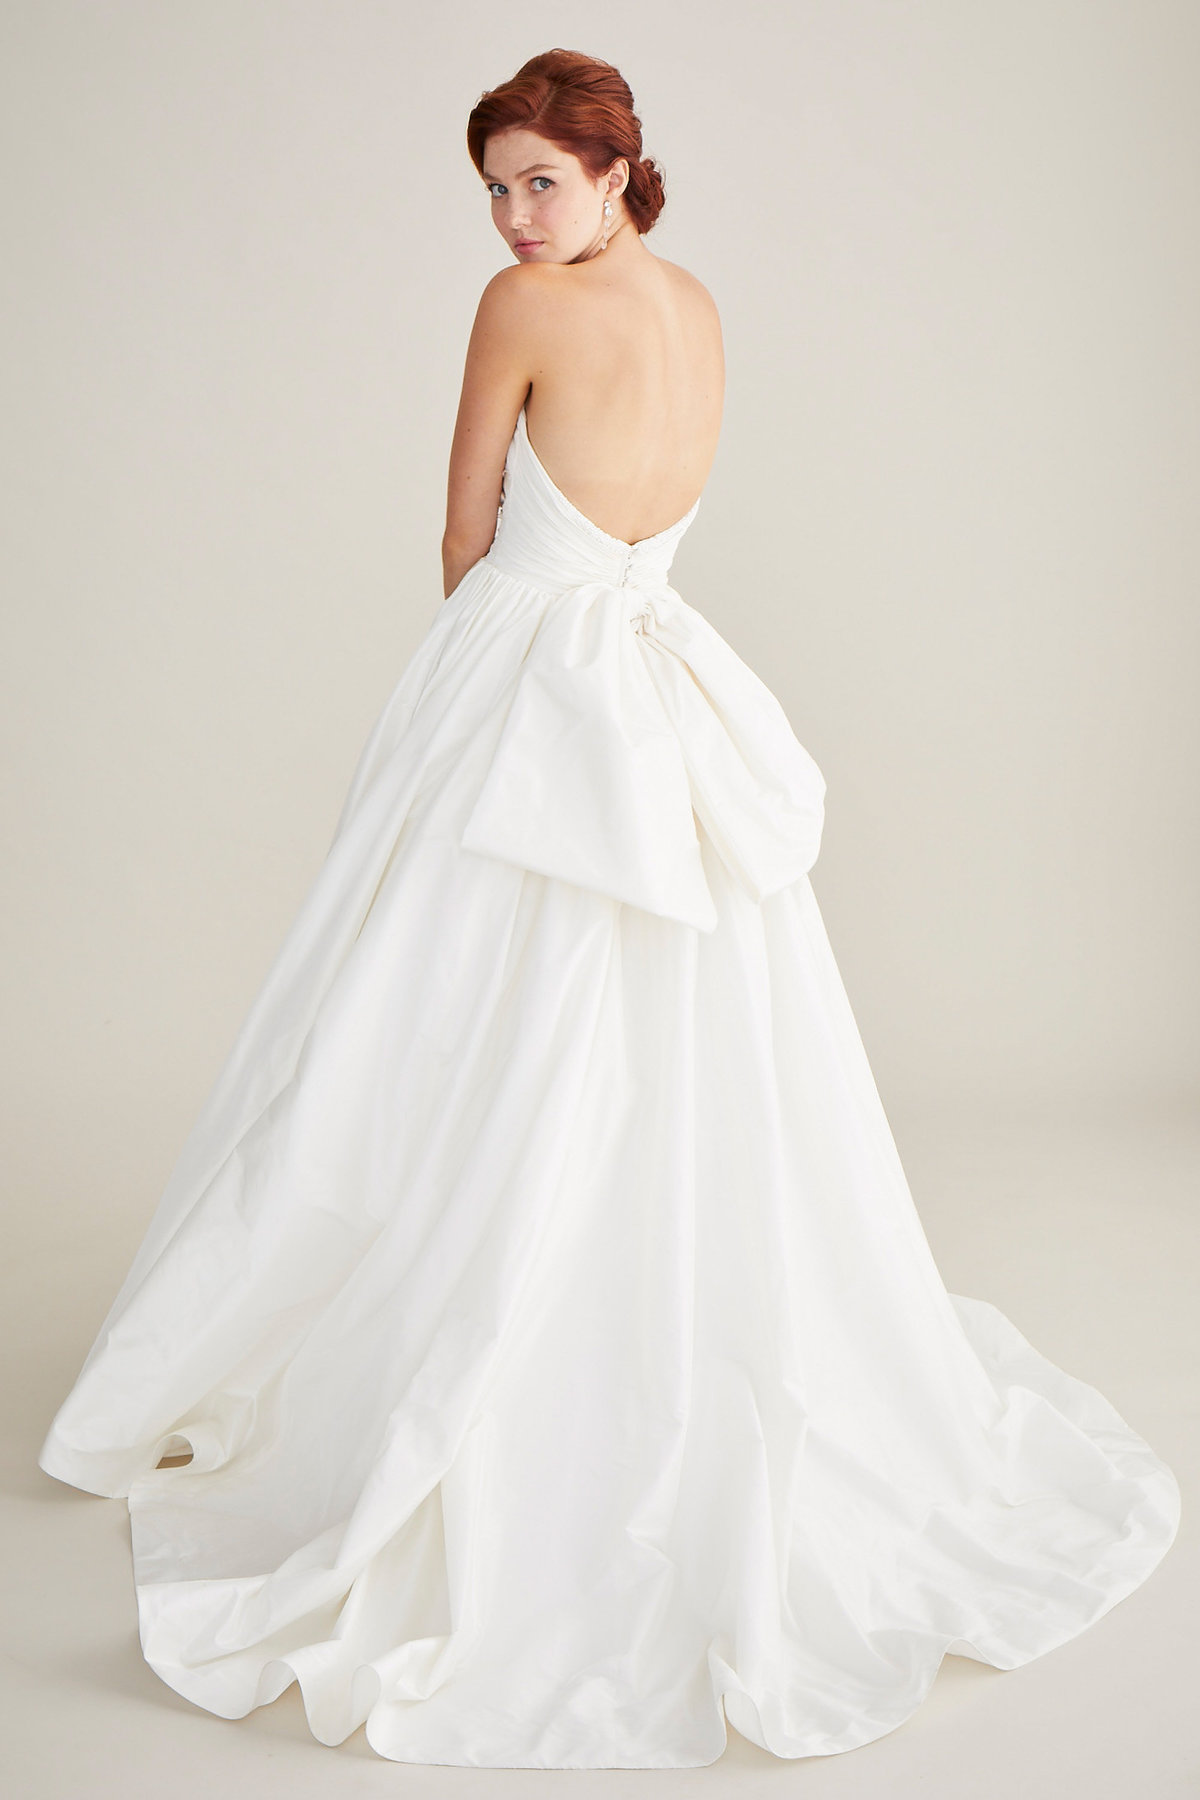 Lea-Ann-Belter-Bridal-Trunk-Show-Jessica-Haley-Bridal-Photo-022